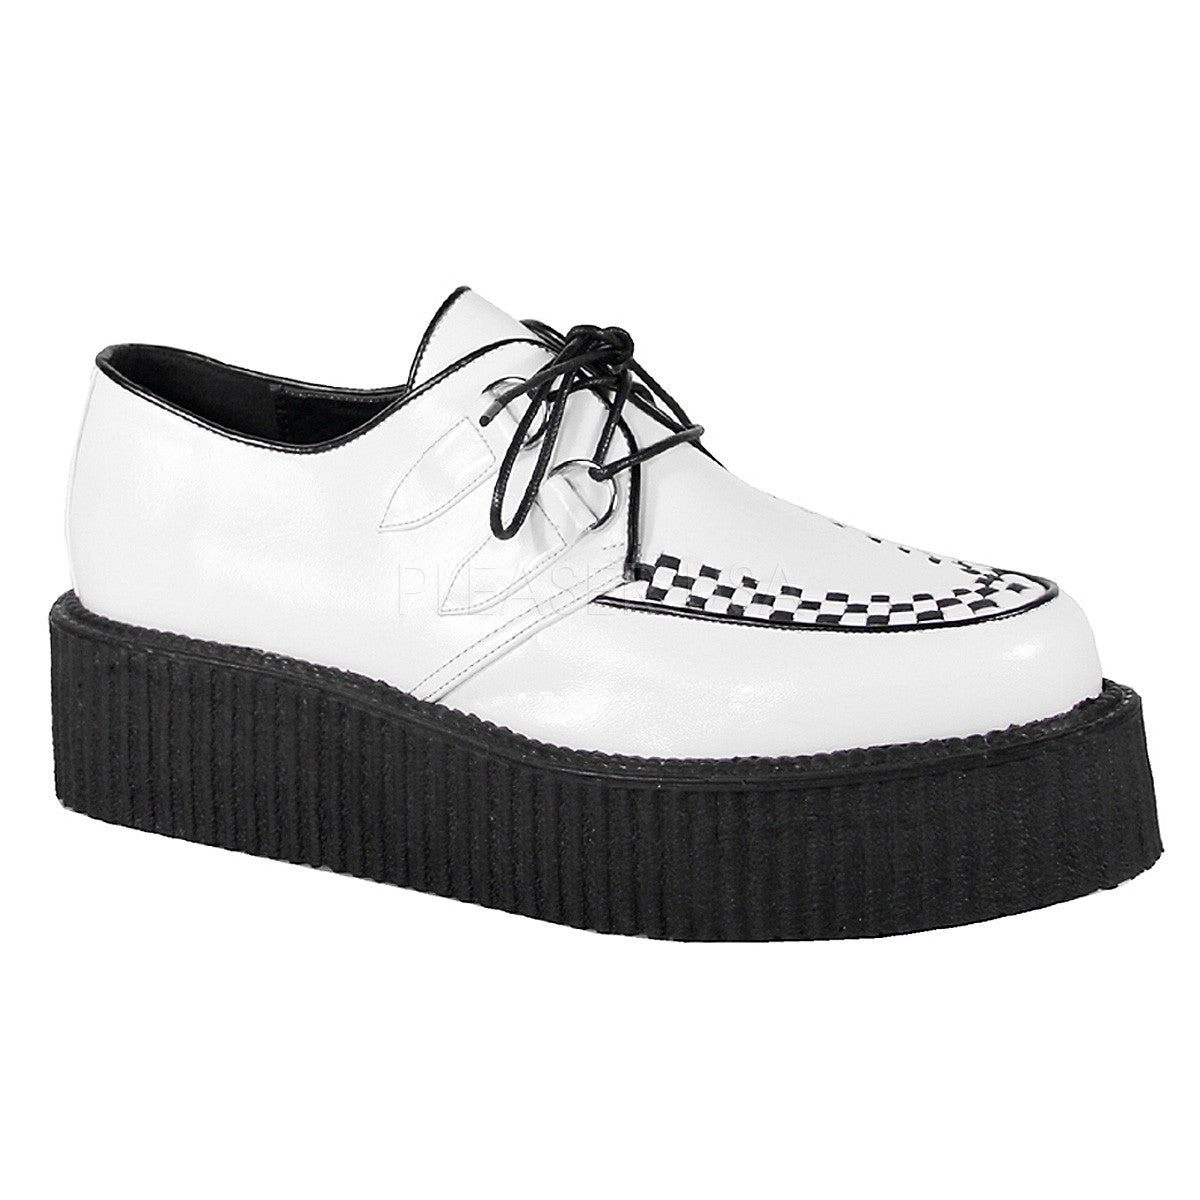 DEMONIA V-CREEPER-502 Men's White Pu Creepers - Shoecup.com - 1